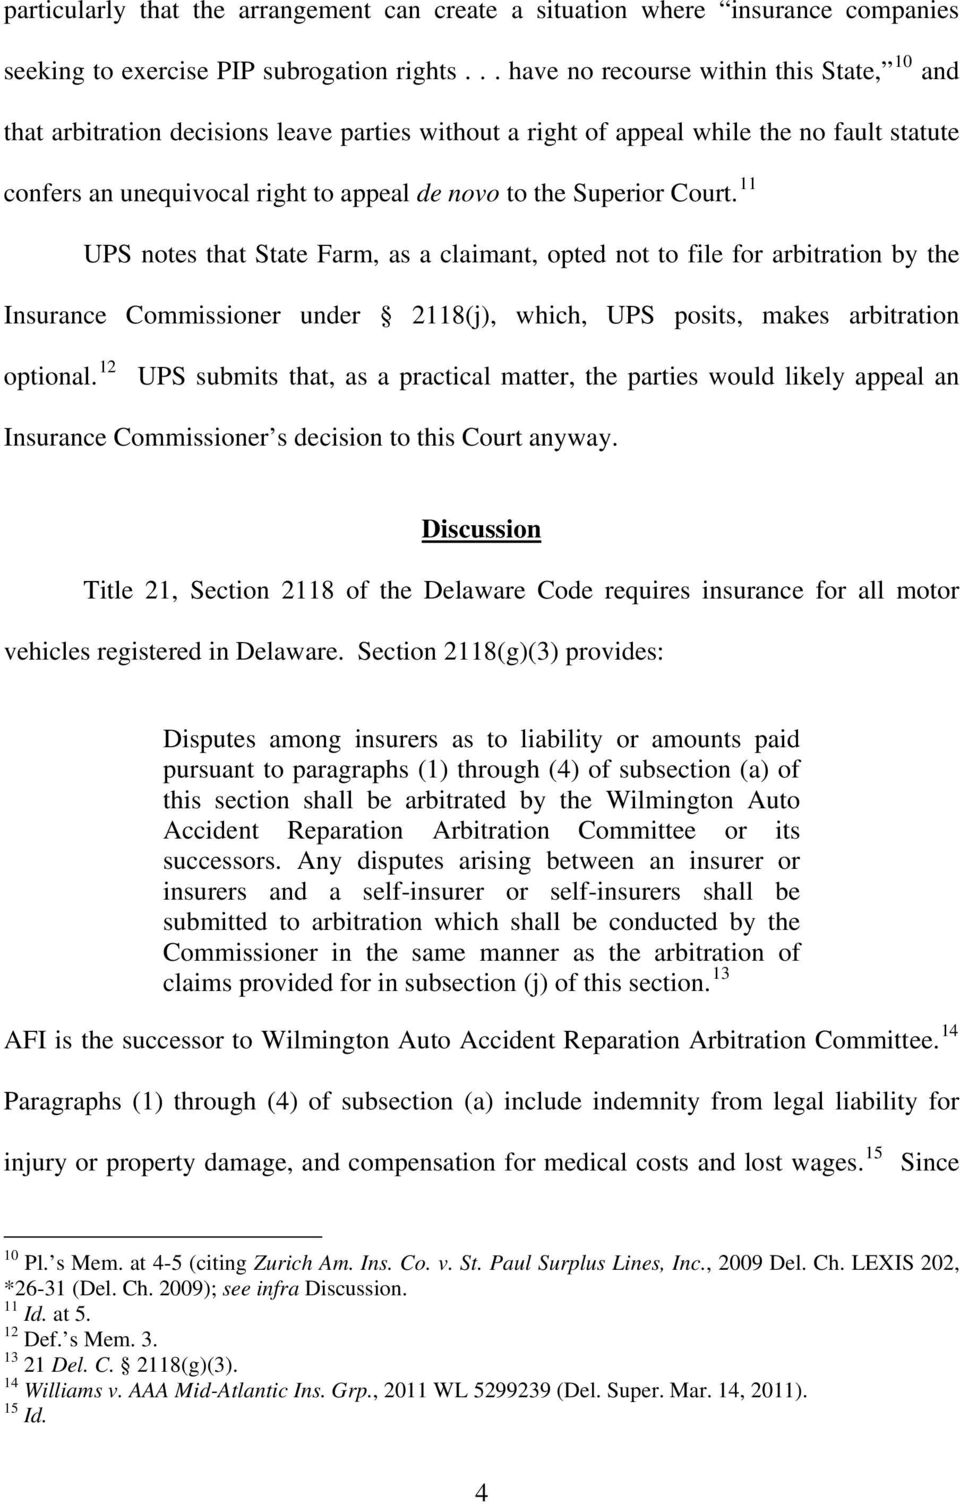 Superior Court. 11 UPS notes that State Farm, as a claimant, opted not to file for arbitration by the Insurance Commissioner under 2118(j), which, UPS posits, makes arbitration optional.